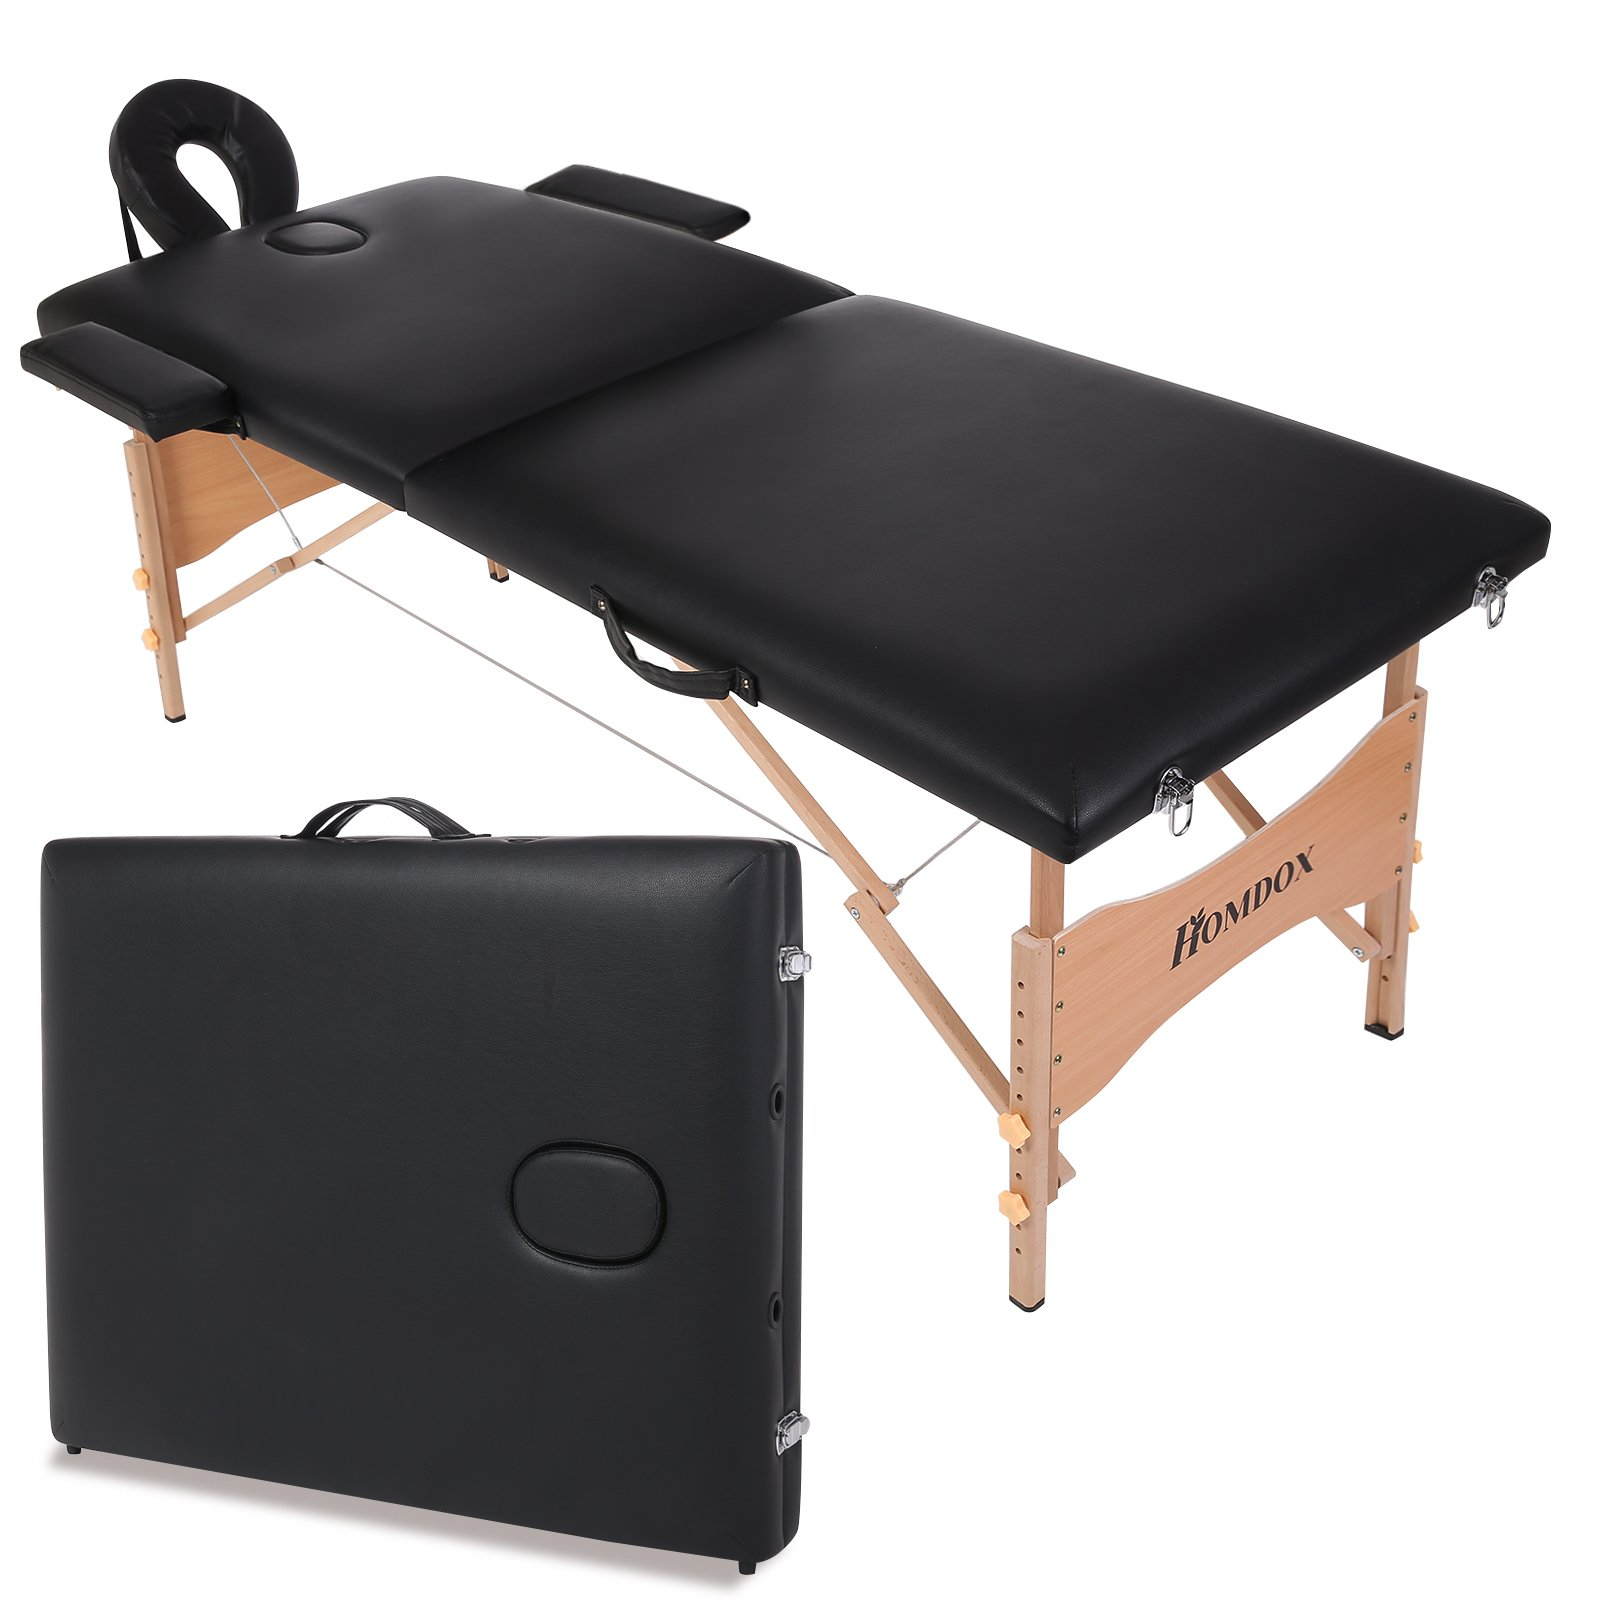 Homdox Portable Massage Table,Two-fold and Wooden Feet w/Free Carry Case